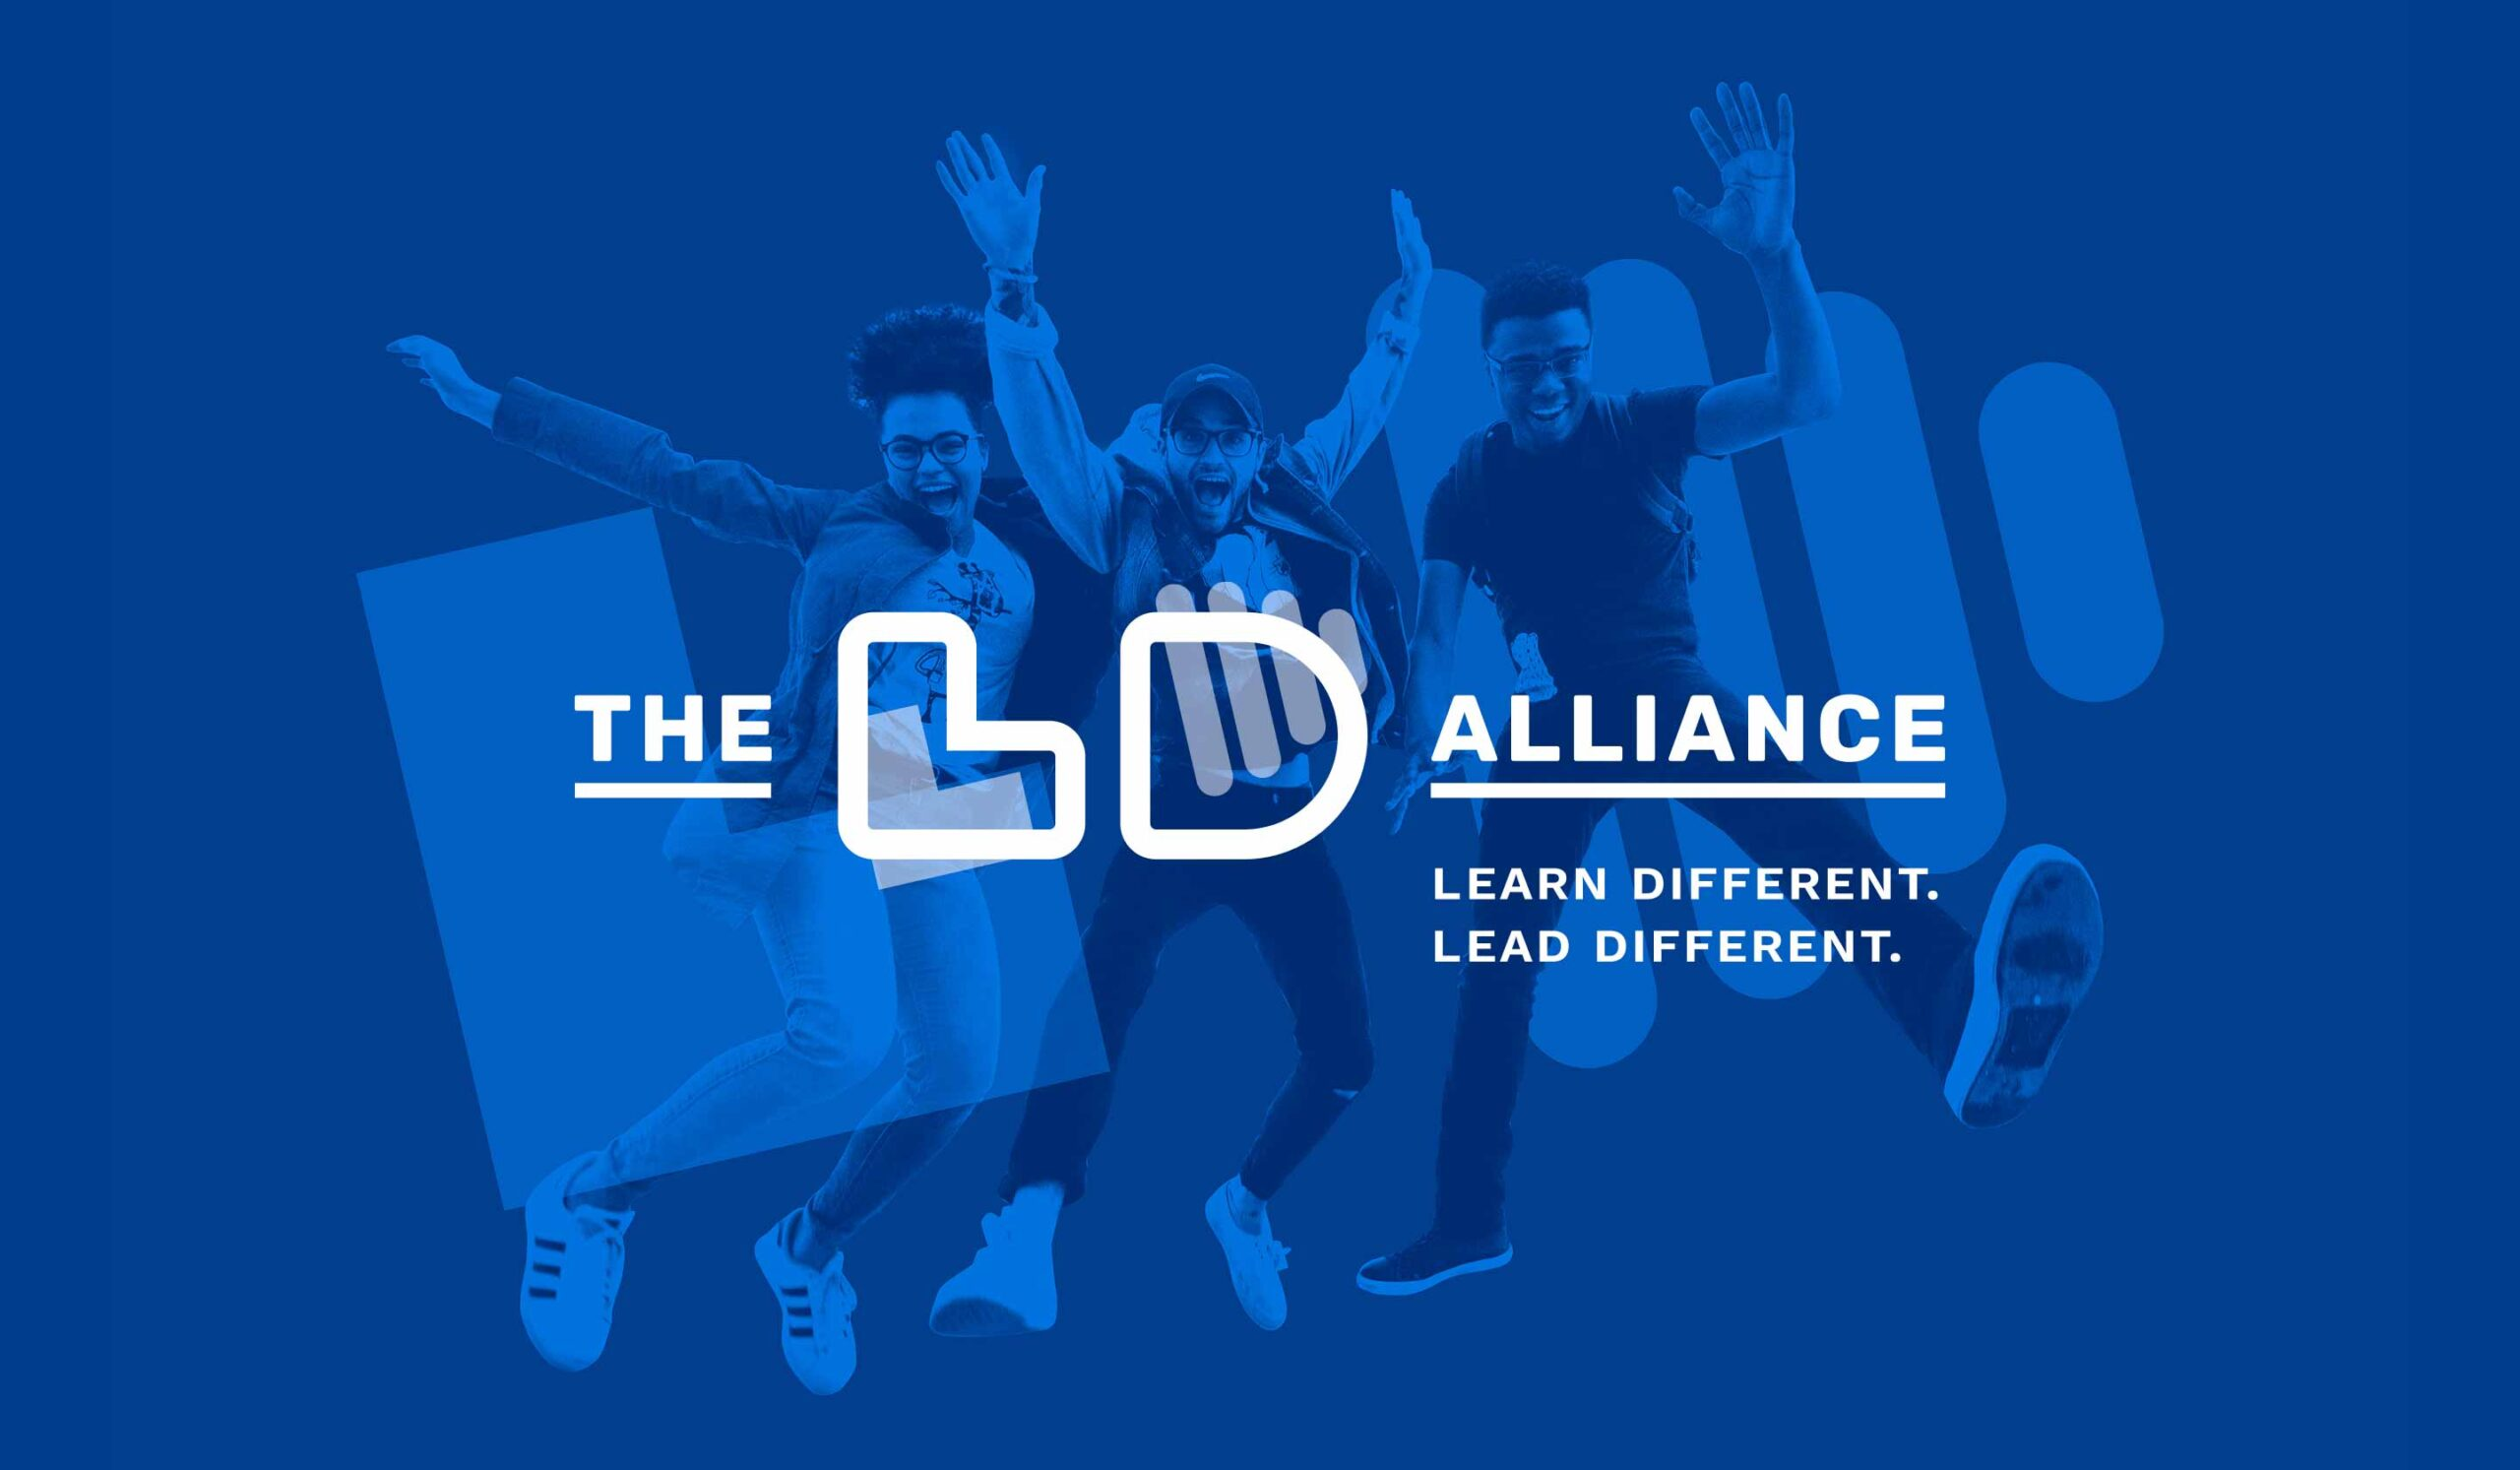 LD-Alliance-Learn-Differently